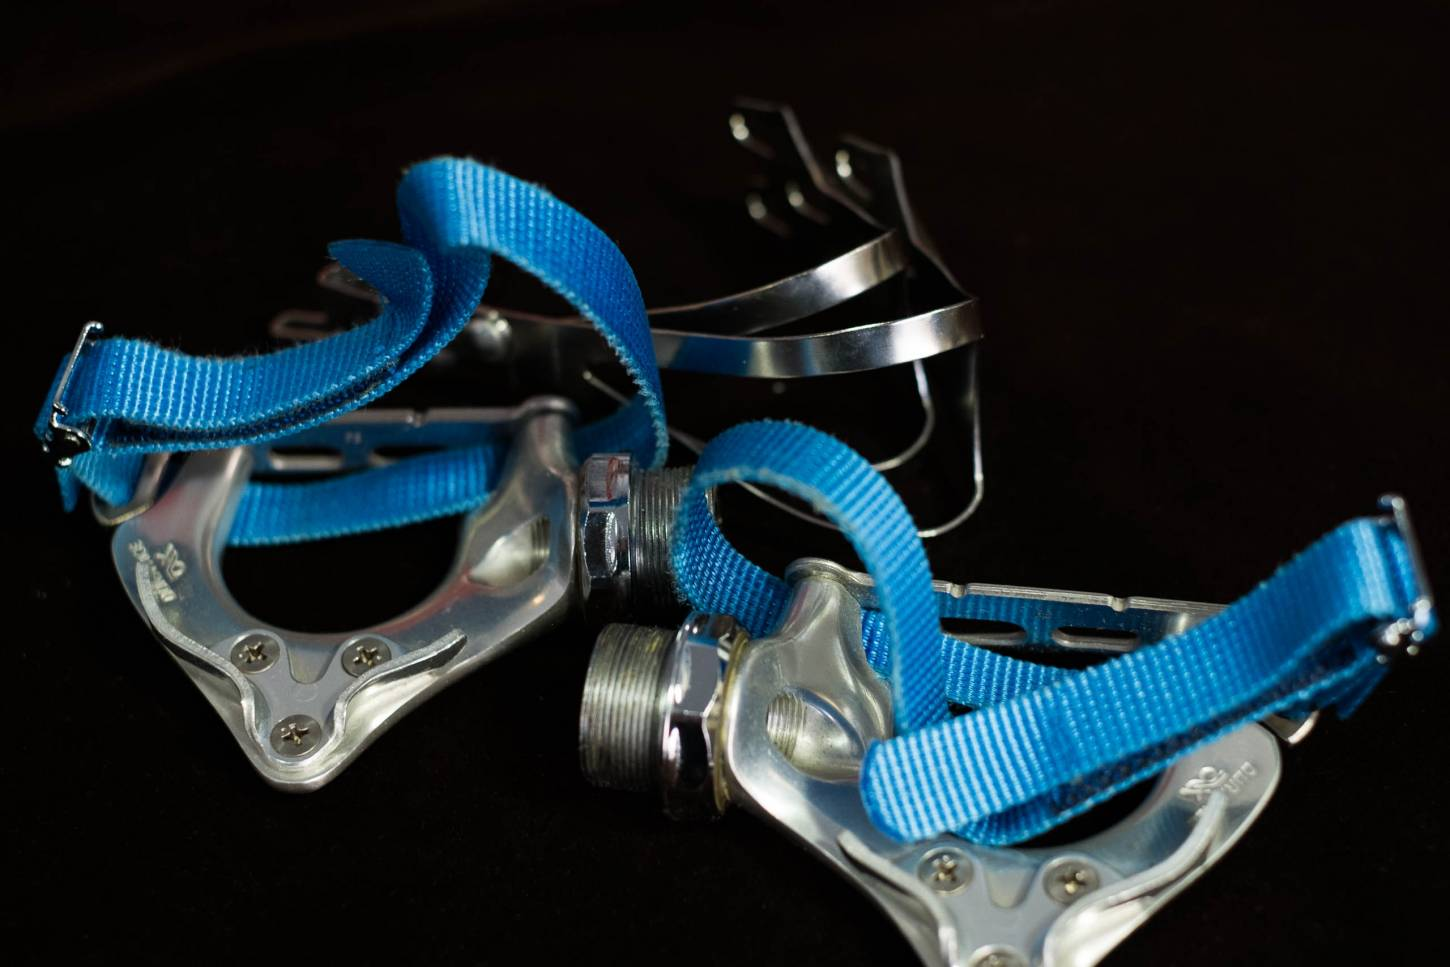 NOS Shimano Dura Ace AX pedals Dynadrive with pedal hook in L + nylon pedal strap Vintage